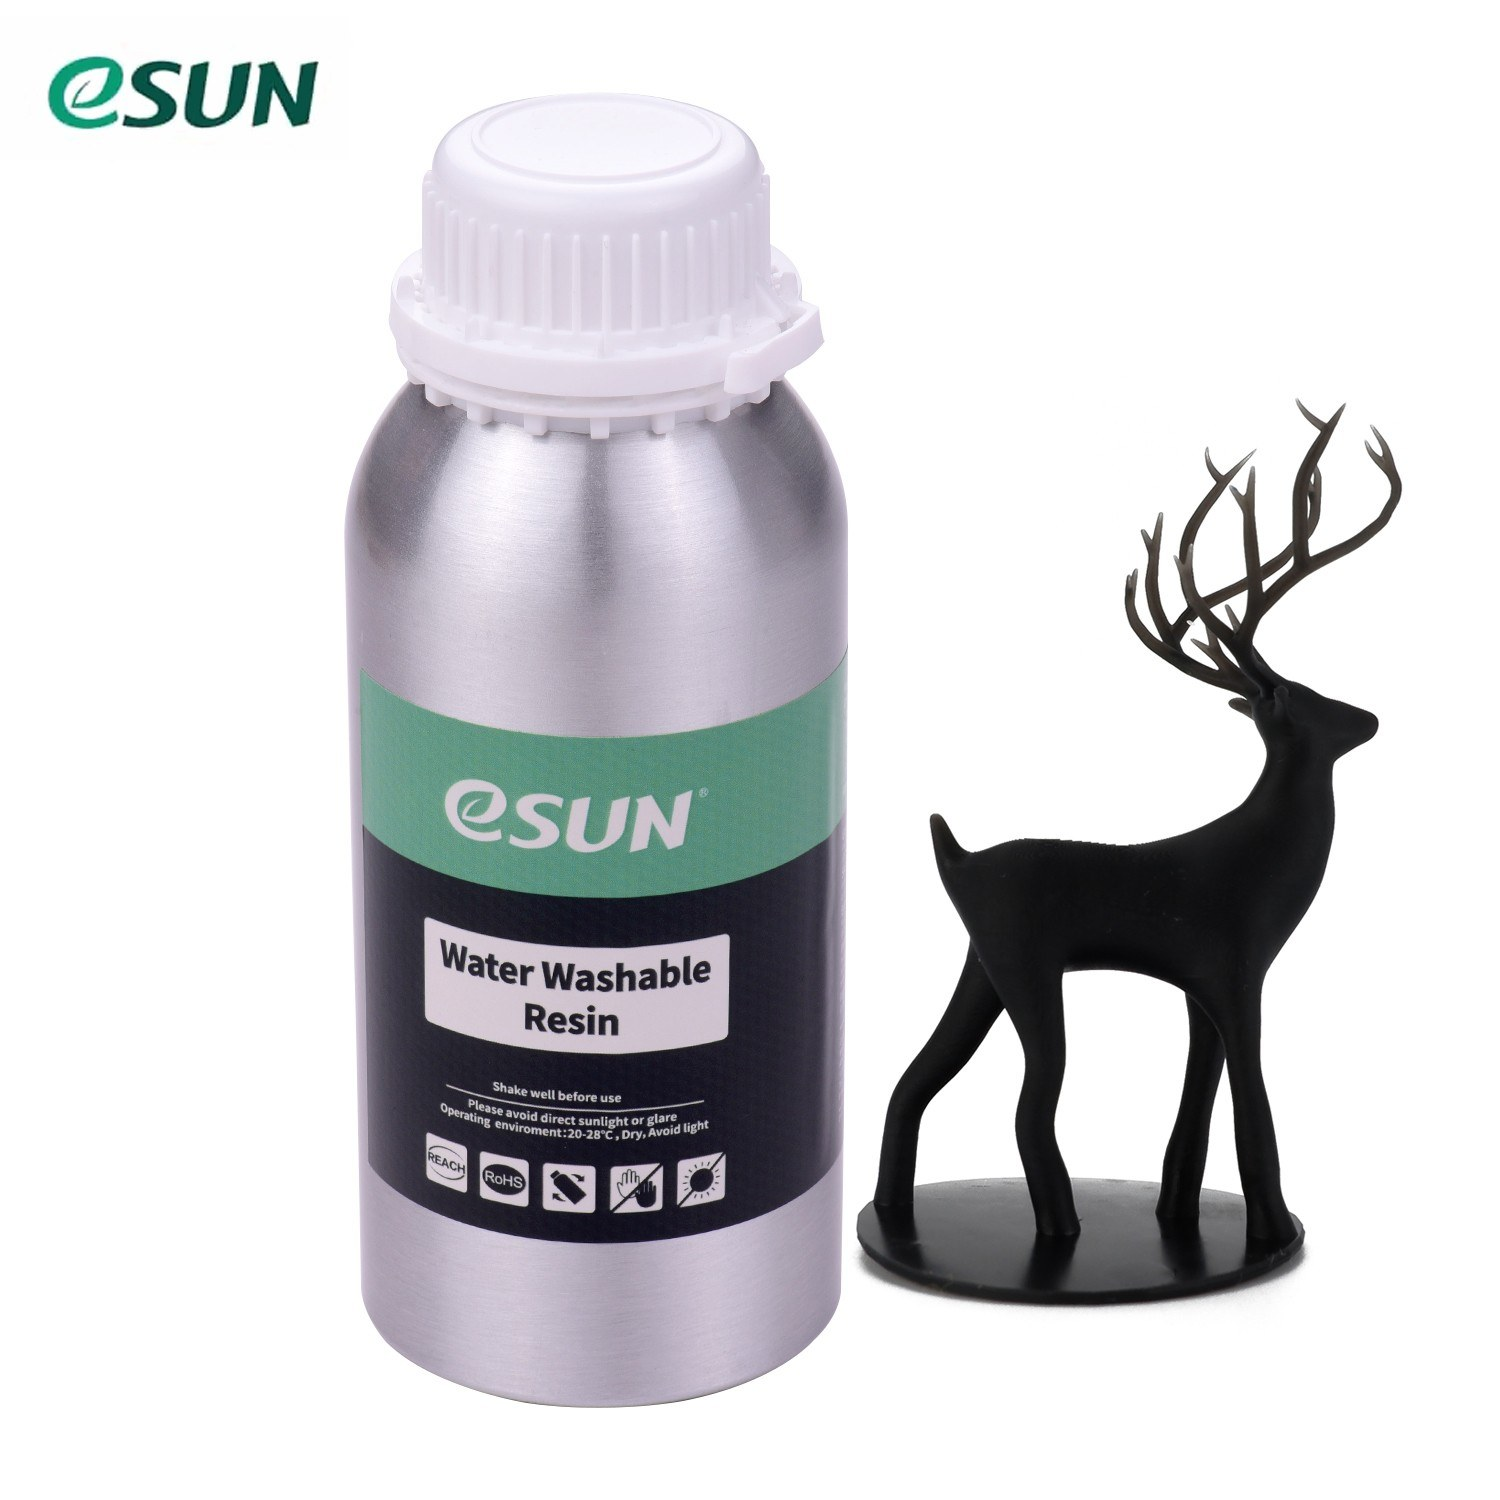 eSUN Water Washable Resin for LCD 3D Printer Aluminum Bottle Liquid Printing Material 76D Hardness Consumables Compatible with Anycubic Nova Sparkmaker Uniz Creality 3D Printers Accessories 500g/Bottle Black